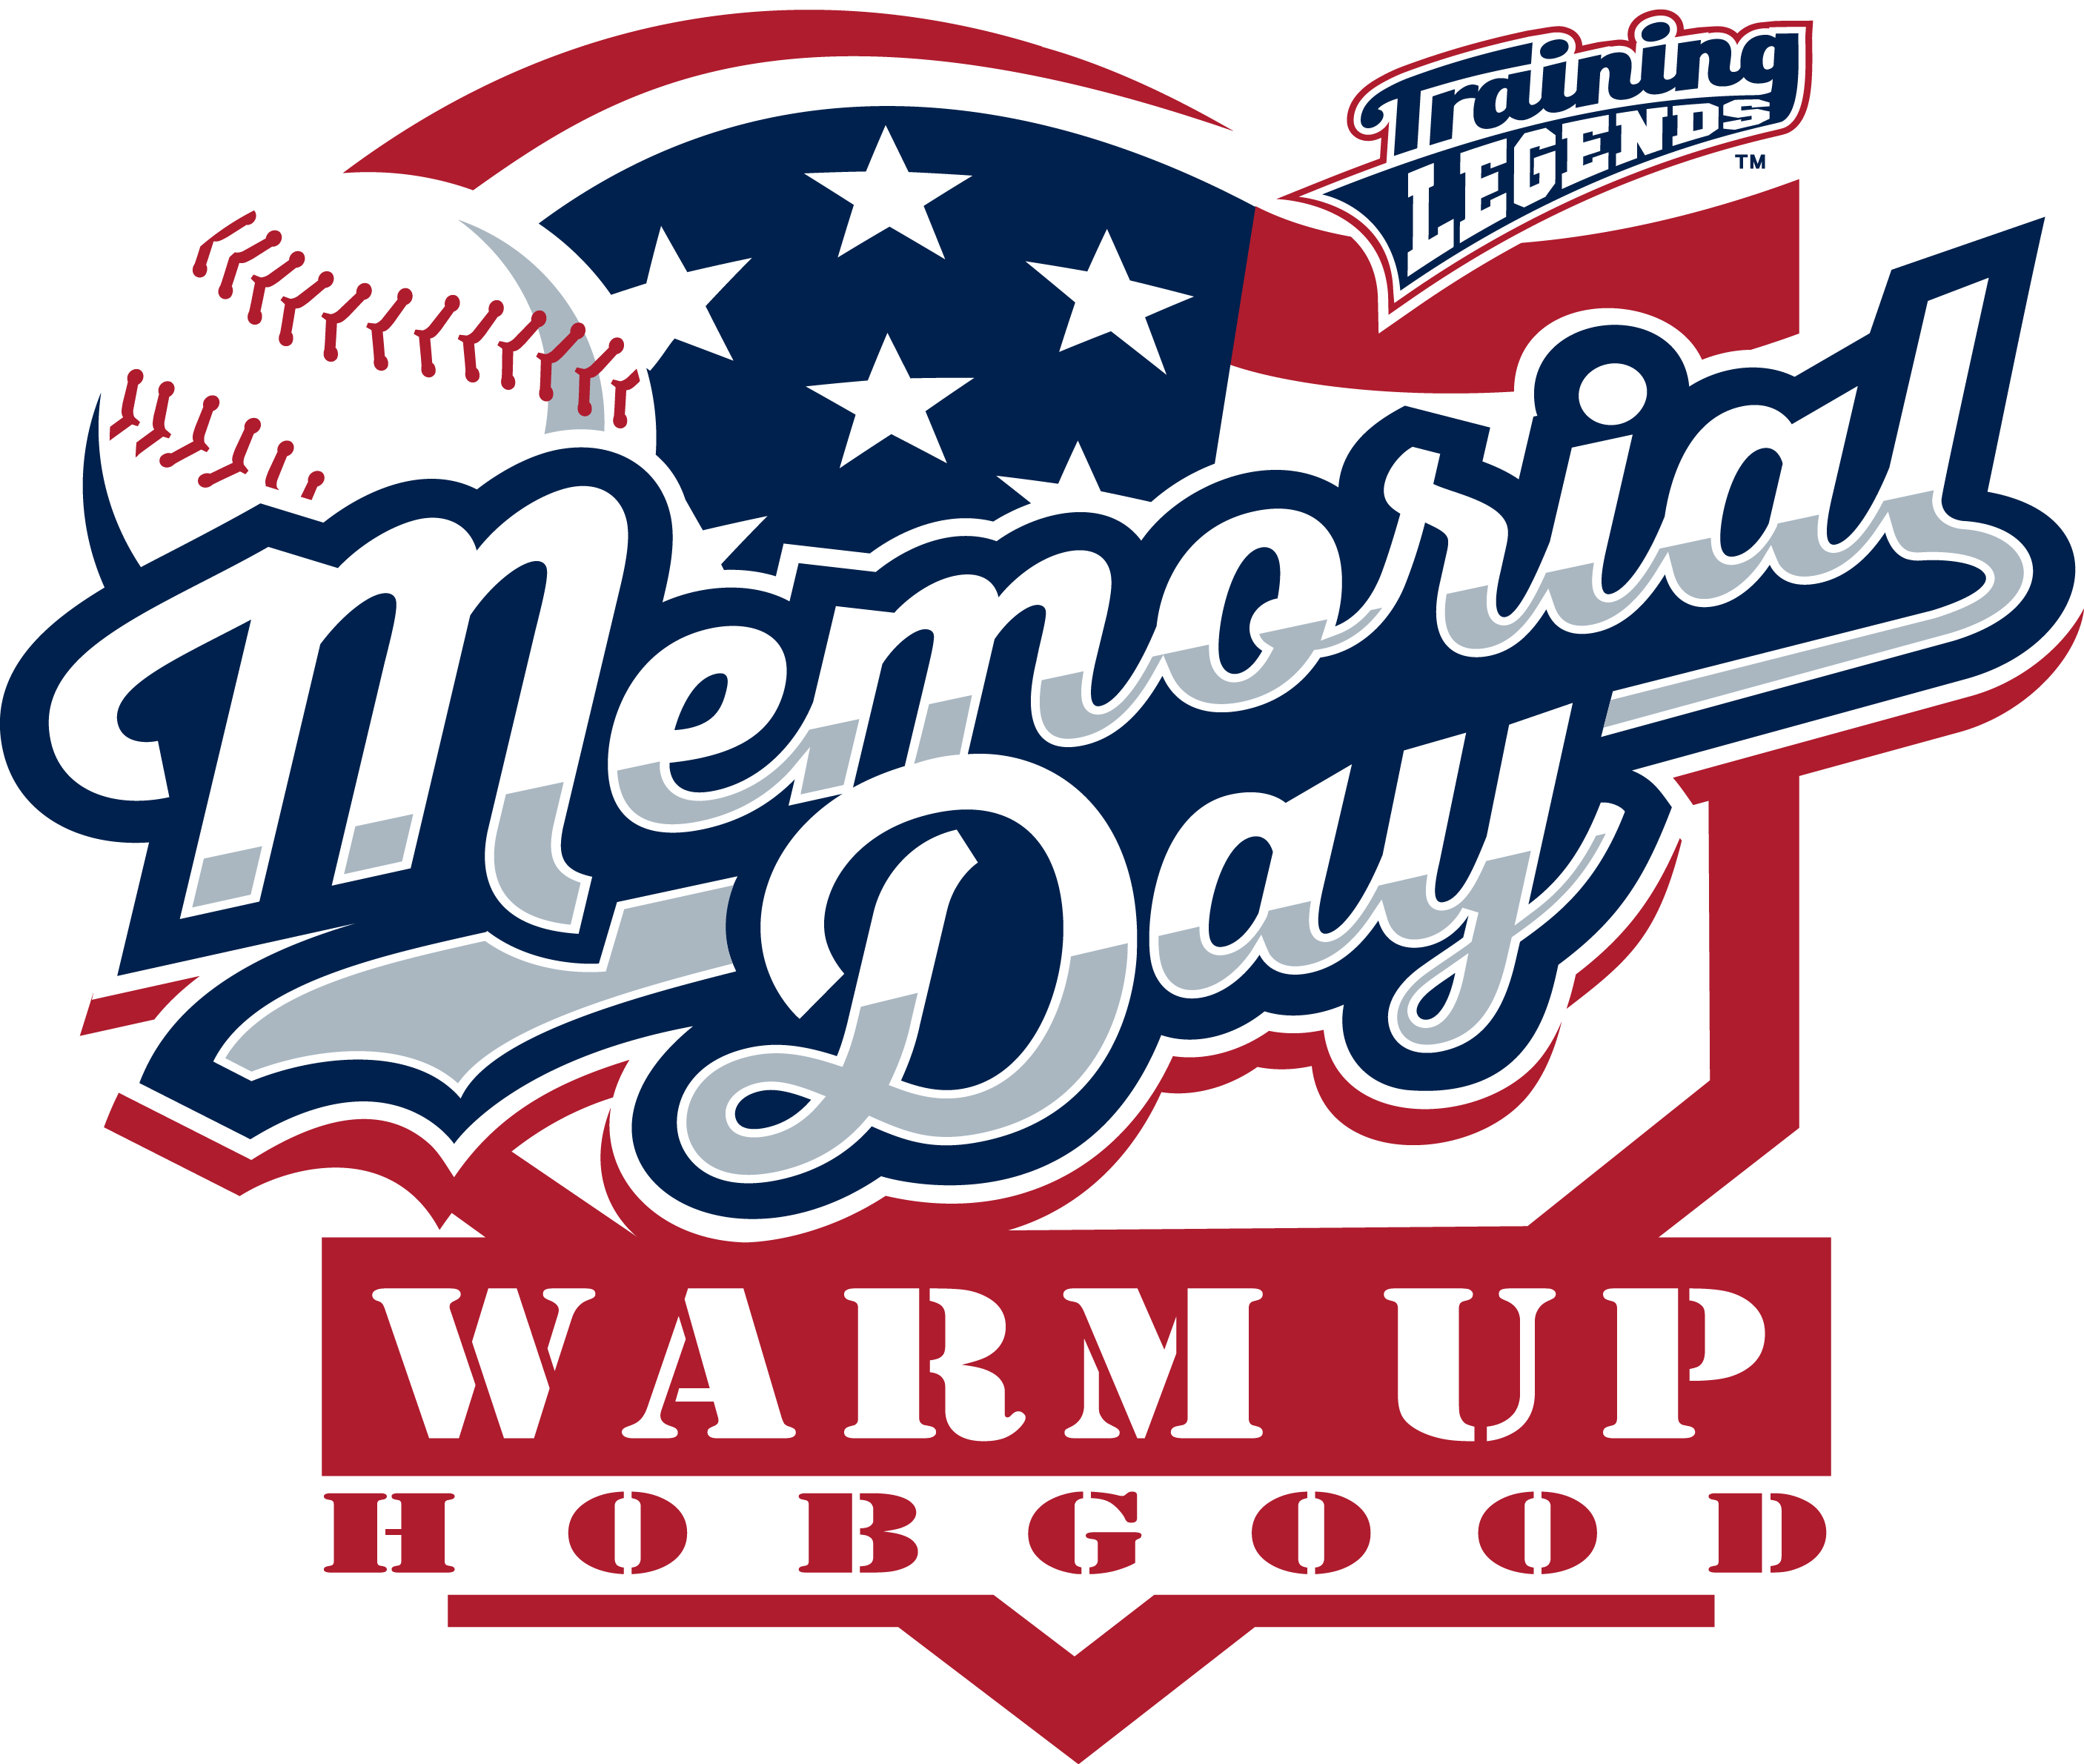 Hobgood Memorial Day Warm Up (All Stars)